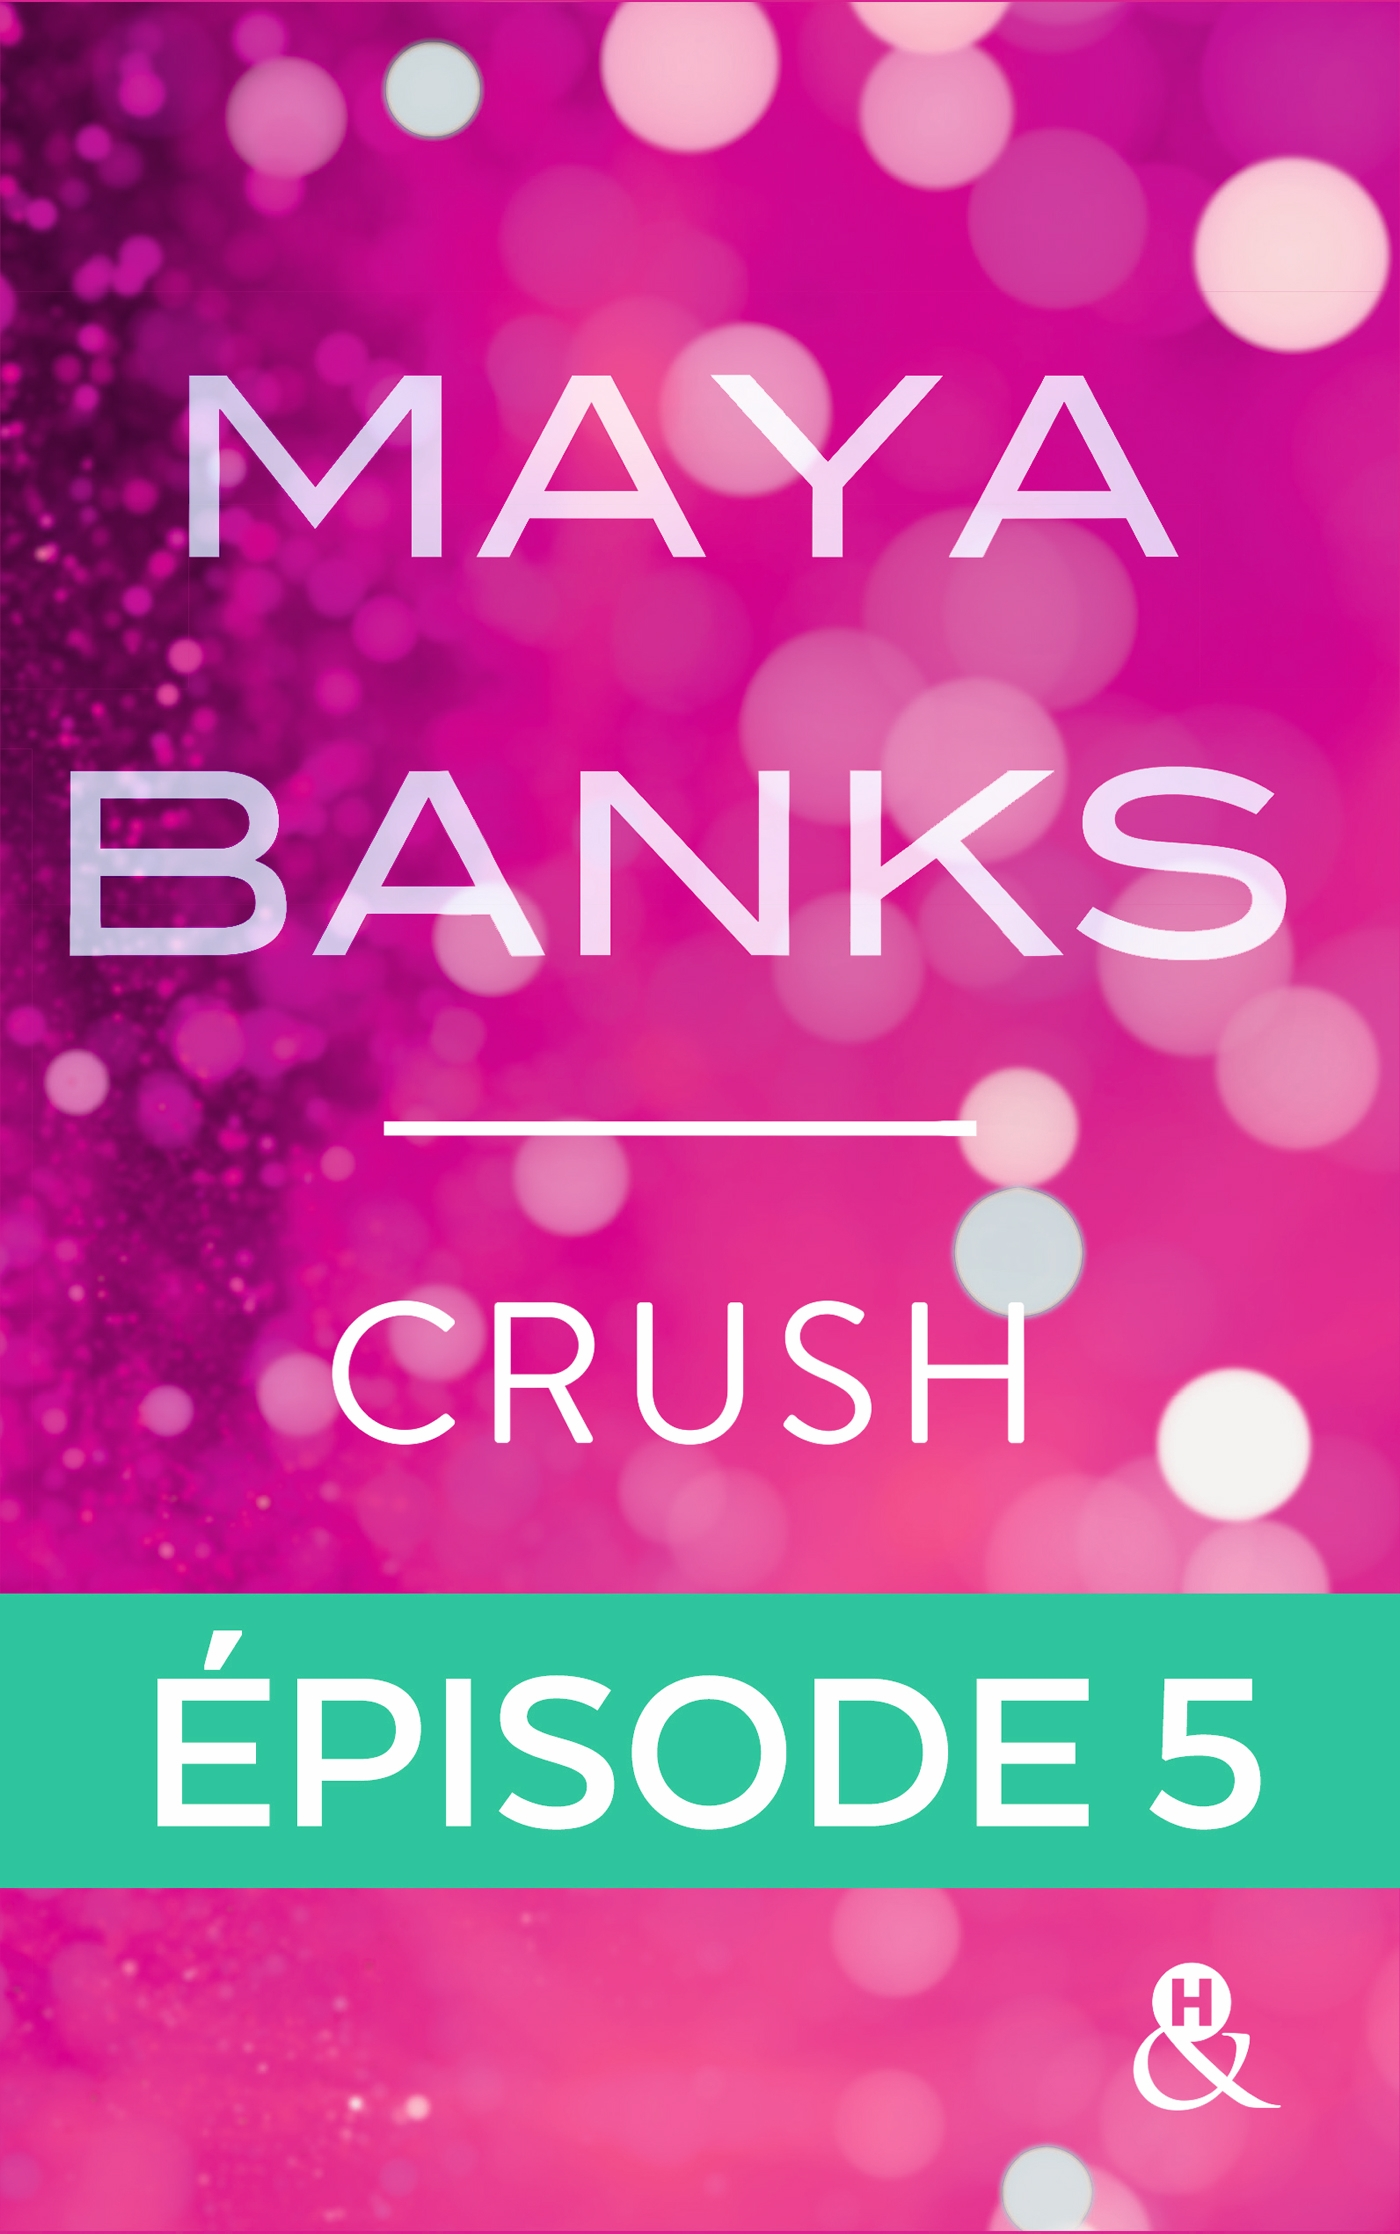 Crush - Episode 5